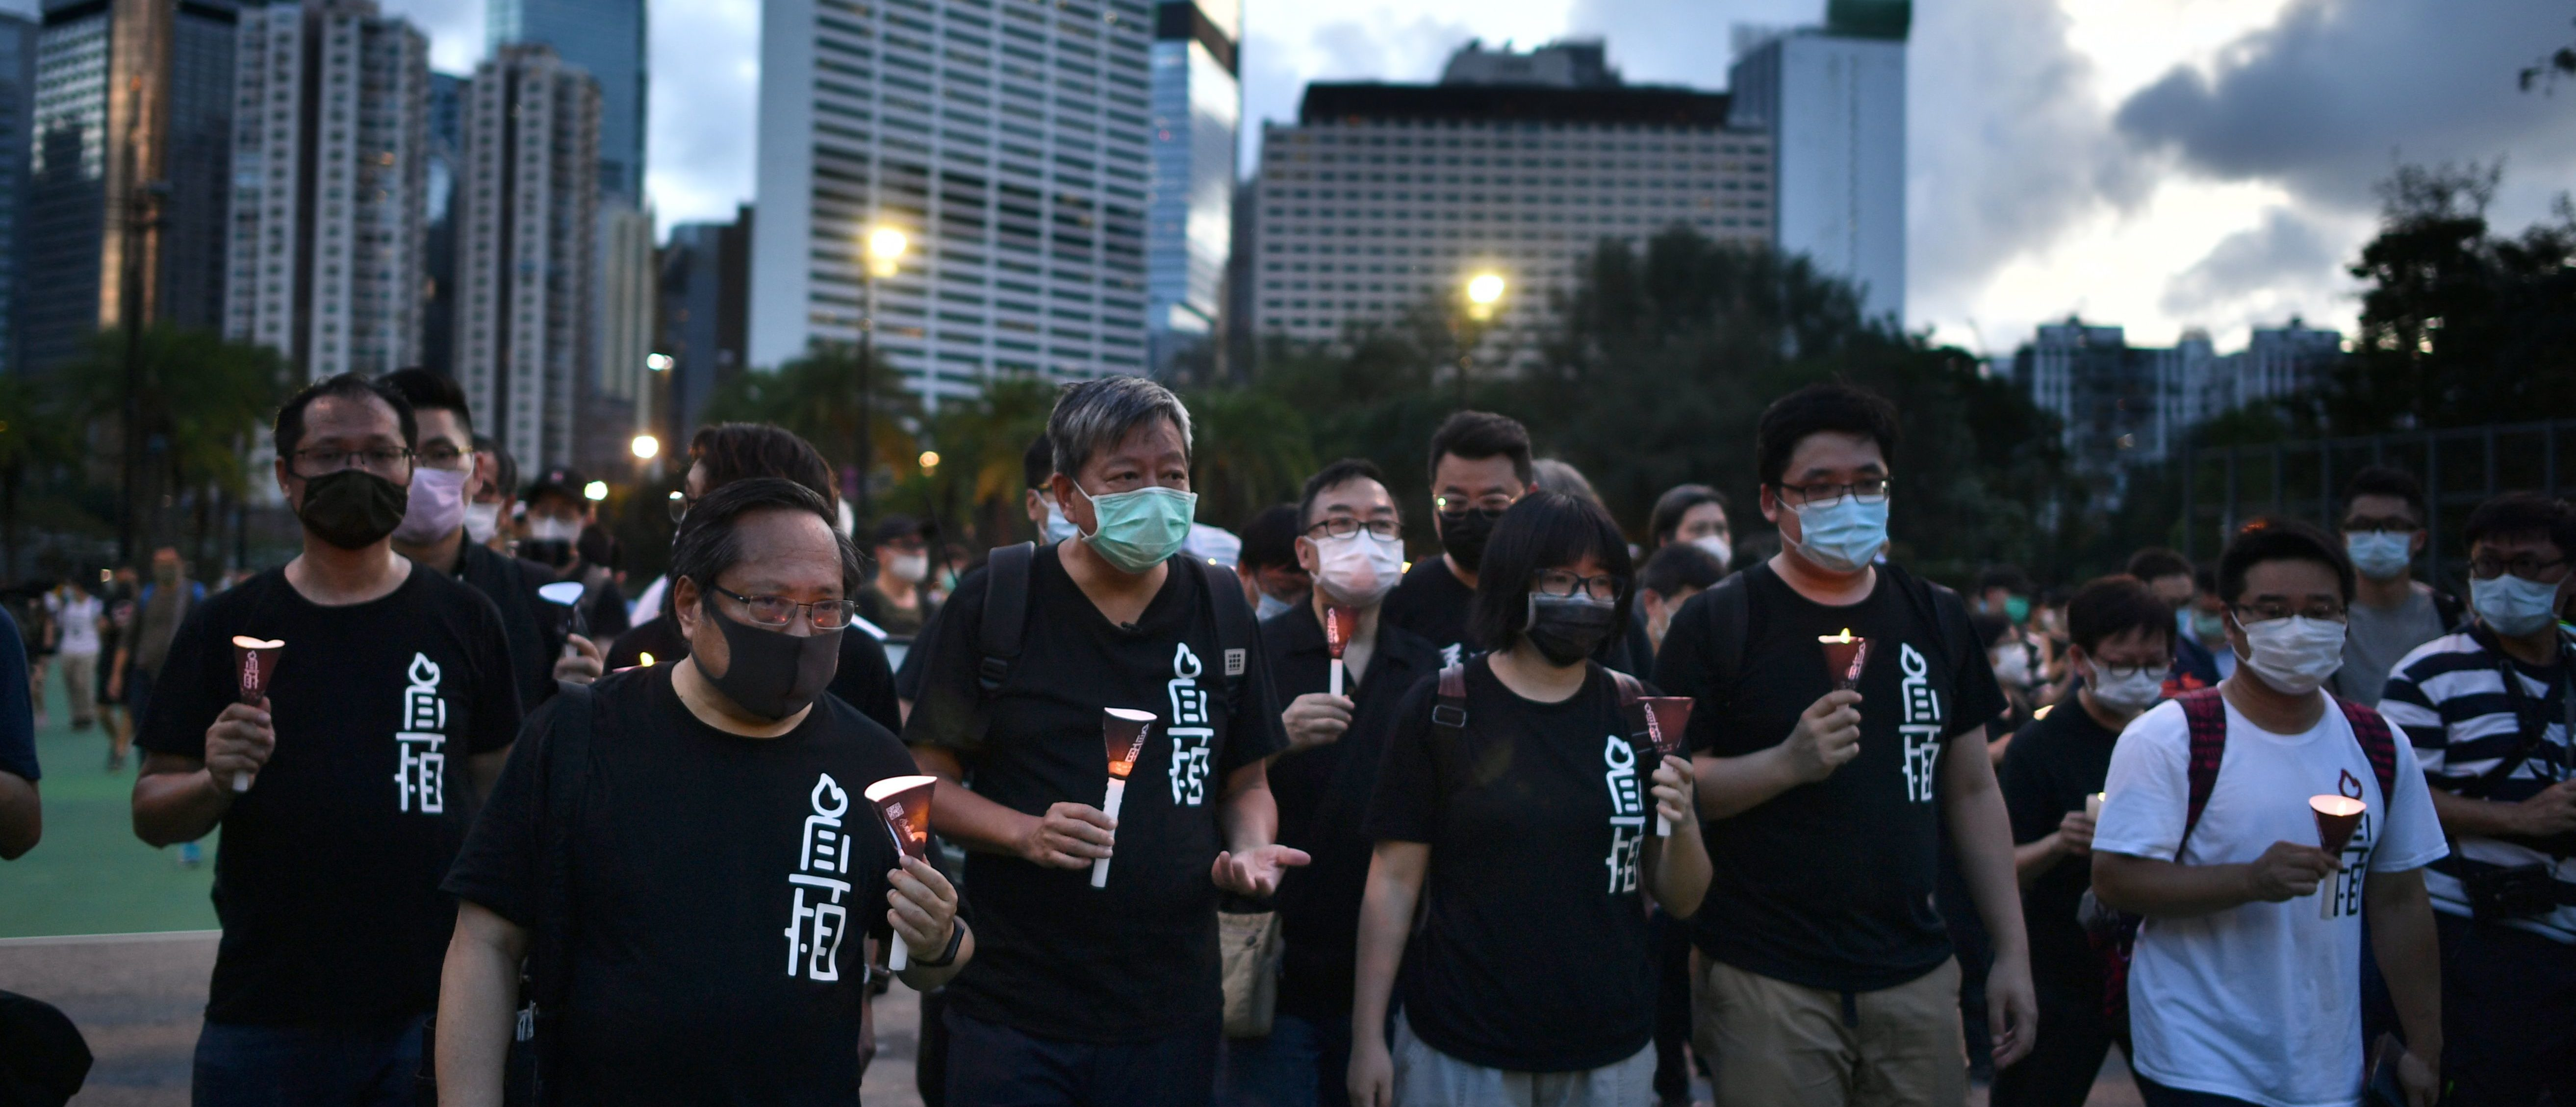 Chairman of the Alliance in Support of Patriotic Democratic Movements of China and former Legislative Council member, Lee Cheuk-yan (3rd L), leads a candlelit remembrance with other activists after crossing downed barricades into Victoria Park in Hong Kong on June 4, 2020, after the annual vigil that traditionally takes place in the park to mark the 1989 Tiananmen Square crackdown was banned on public health grounds because of the COVID-19 coronavirus pandemic. (Photo by Anthony WALLACE / AFP) (Photo by ANTHONY WALLACE/AFP via Getty Images)